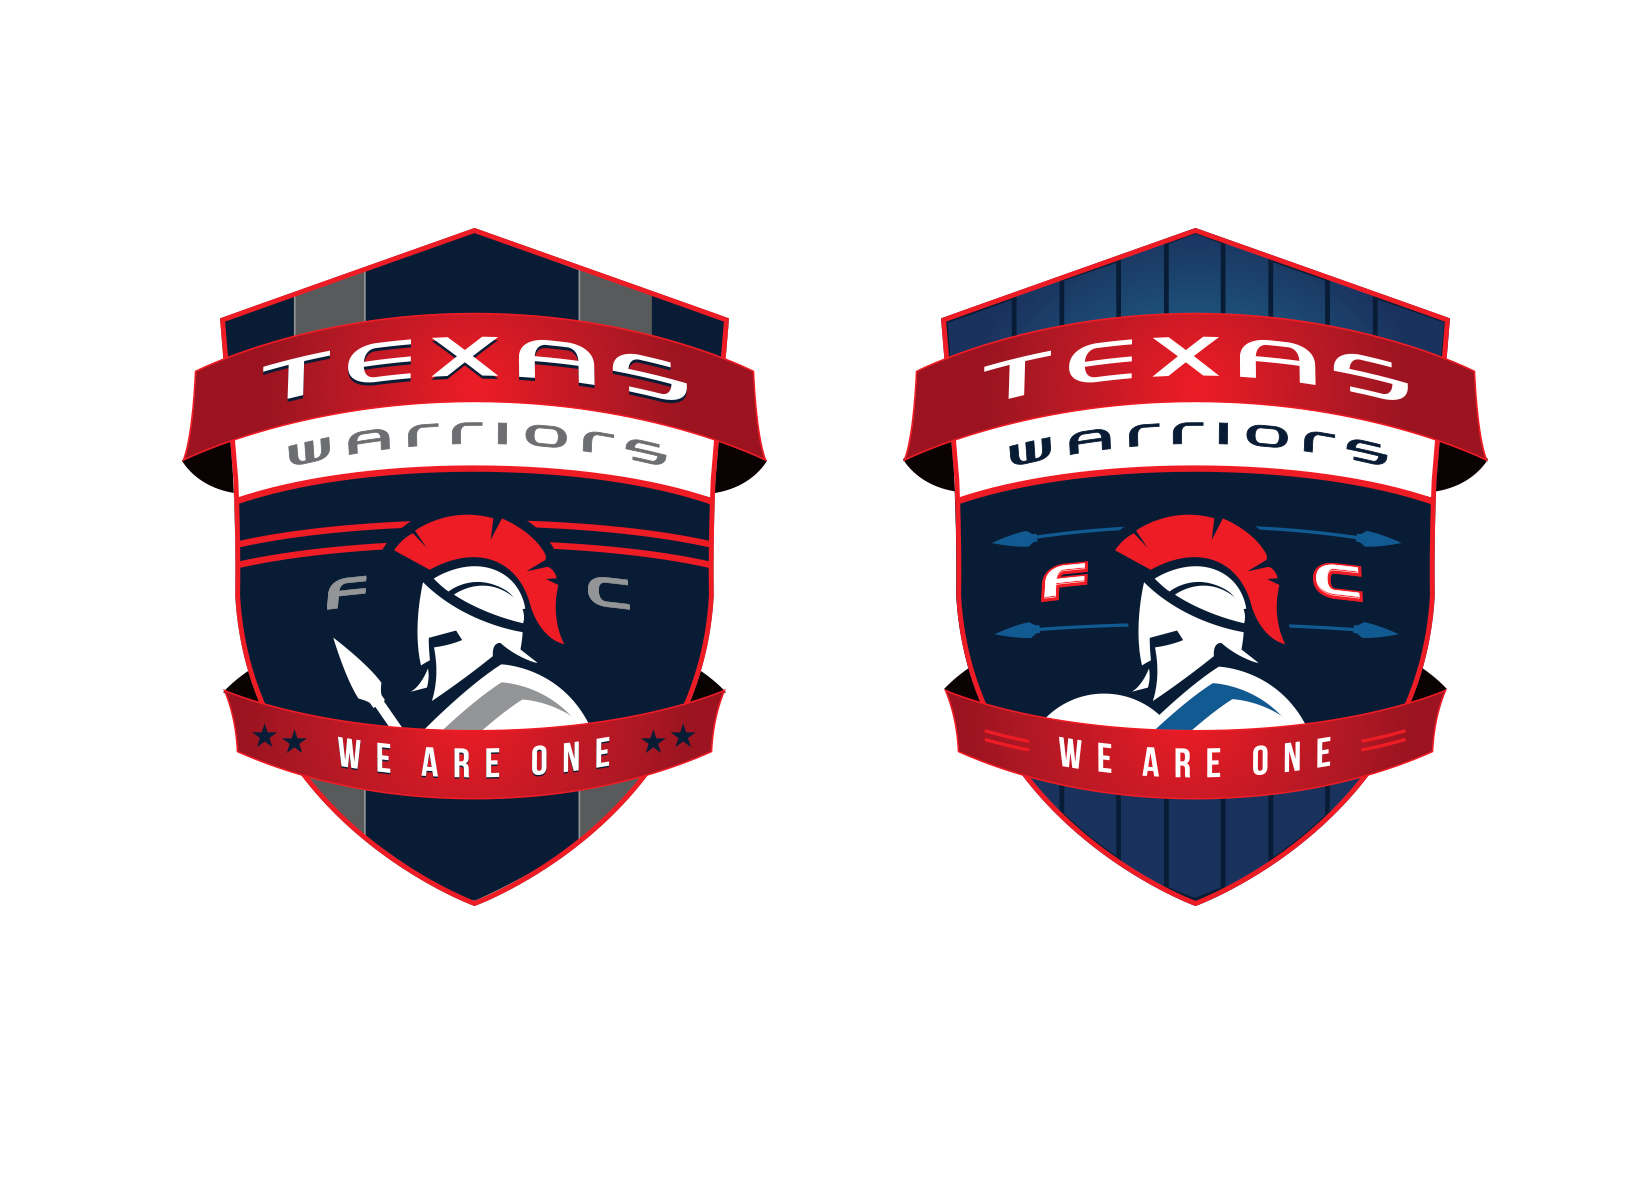 custom-soccer-logo-design-texas-team-by-jordan-fretz-3.jpg